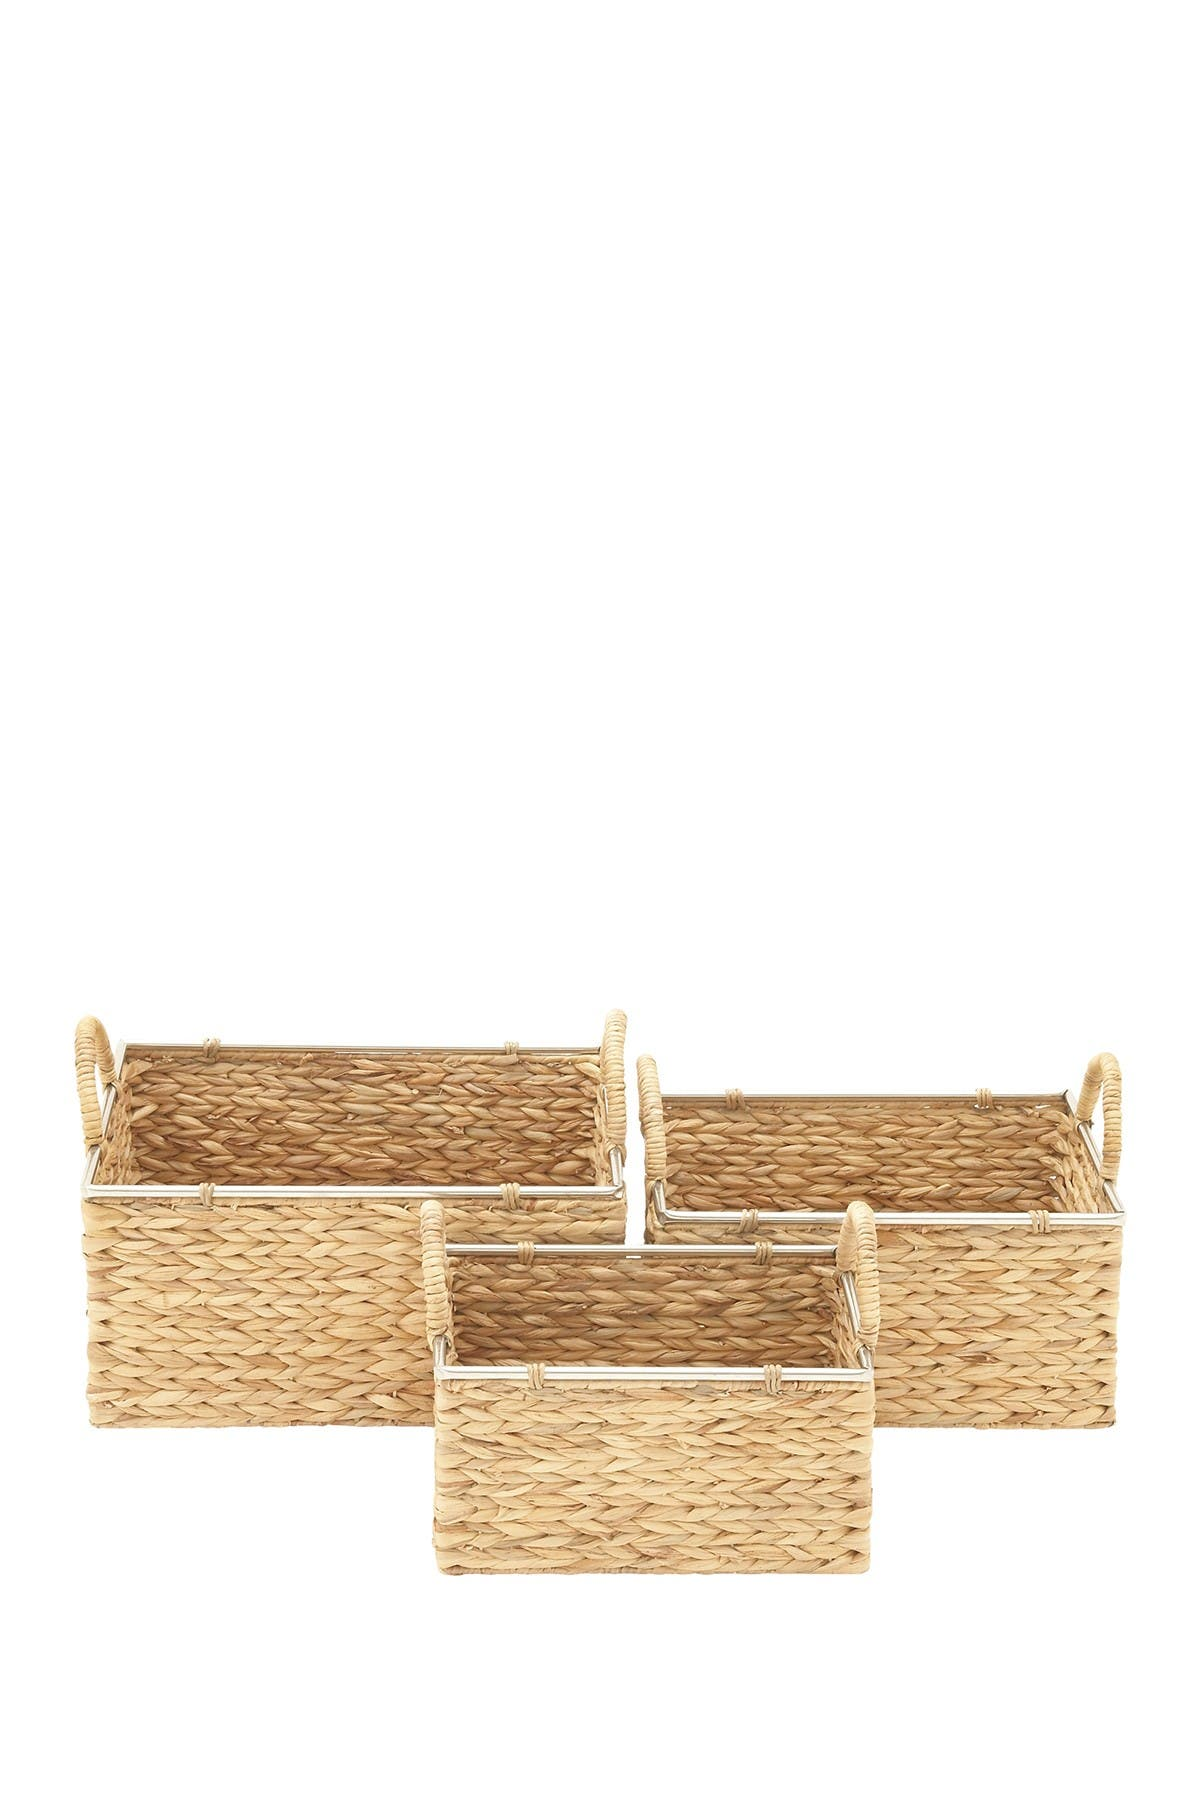 Image of Willow Row Seagrass Basket - Set of 3